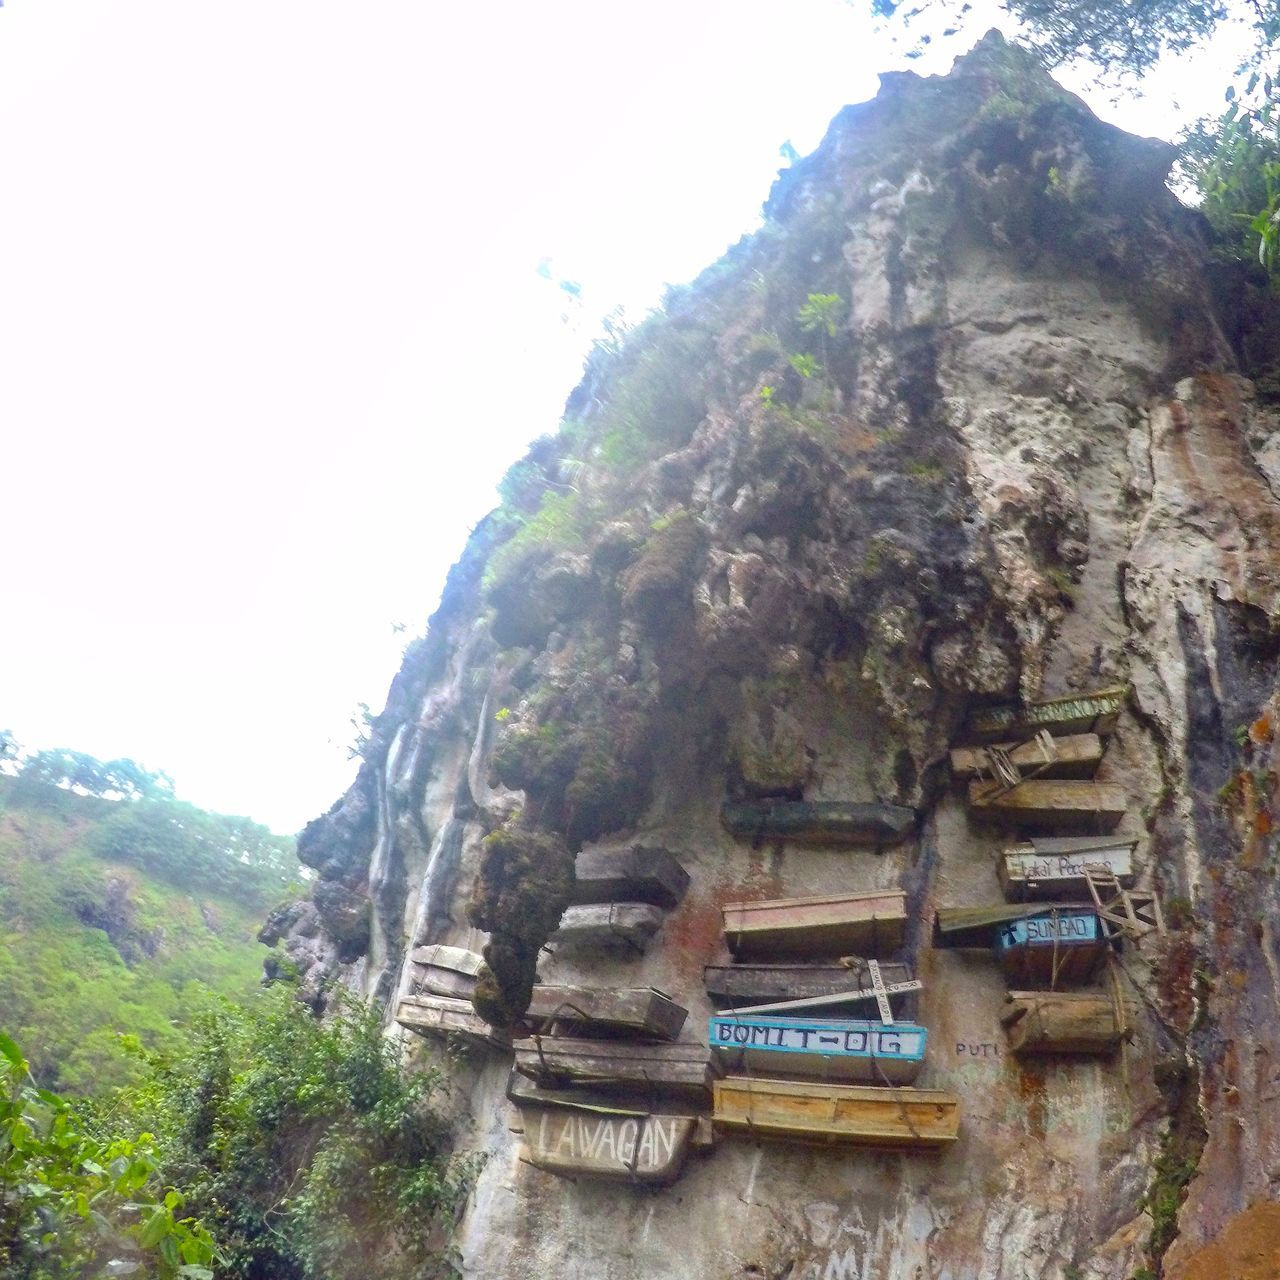 The Hangging Coffins of Sagada, Mt. Province Philippines New Talent EyeEmNewHere First Eyeem Photo Eyeem Philippines Travel Travel Photography GoPro Hero 4 GoPrography No People Vacations Travel Destinations Landscape Outdoors Tree Day Nature Plant SkyBeauty In Nature Mountain Cultures Scenics Rock Rock Formation